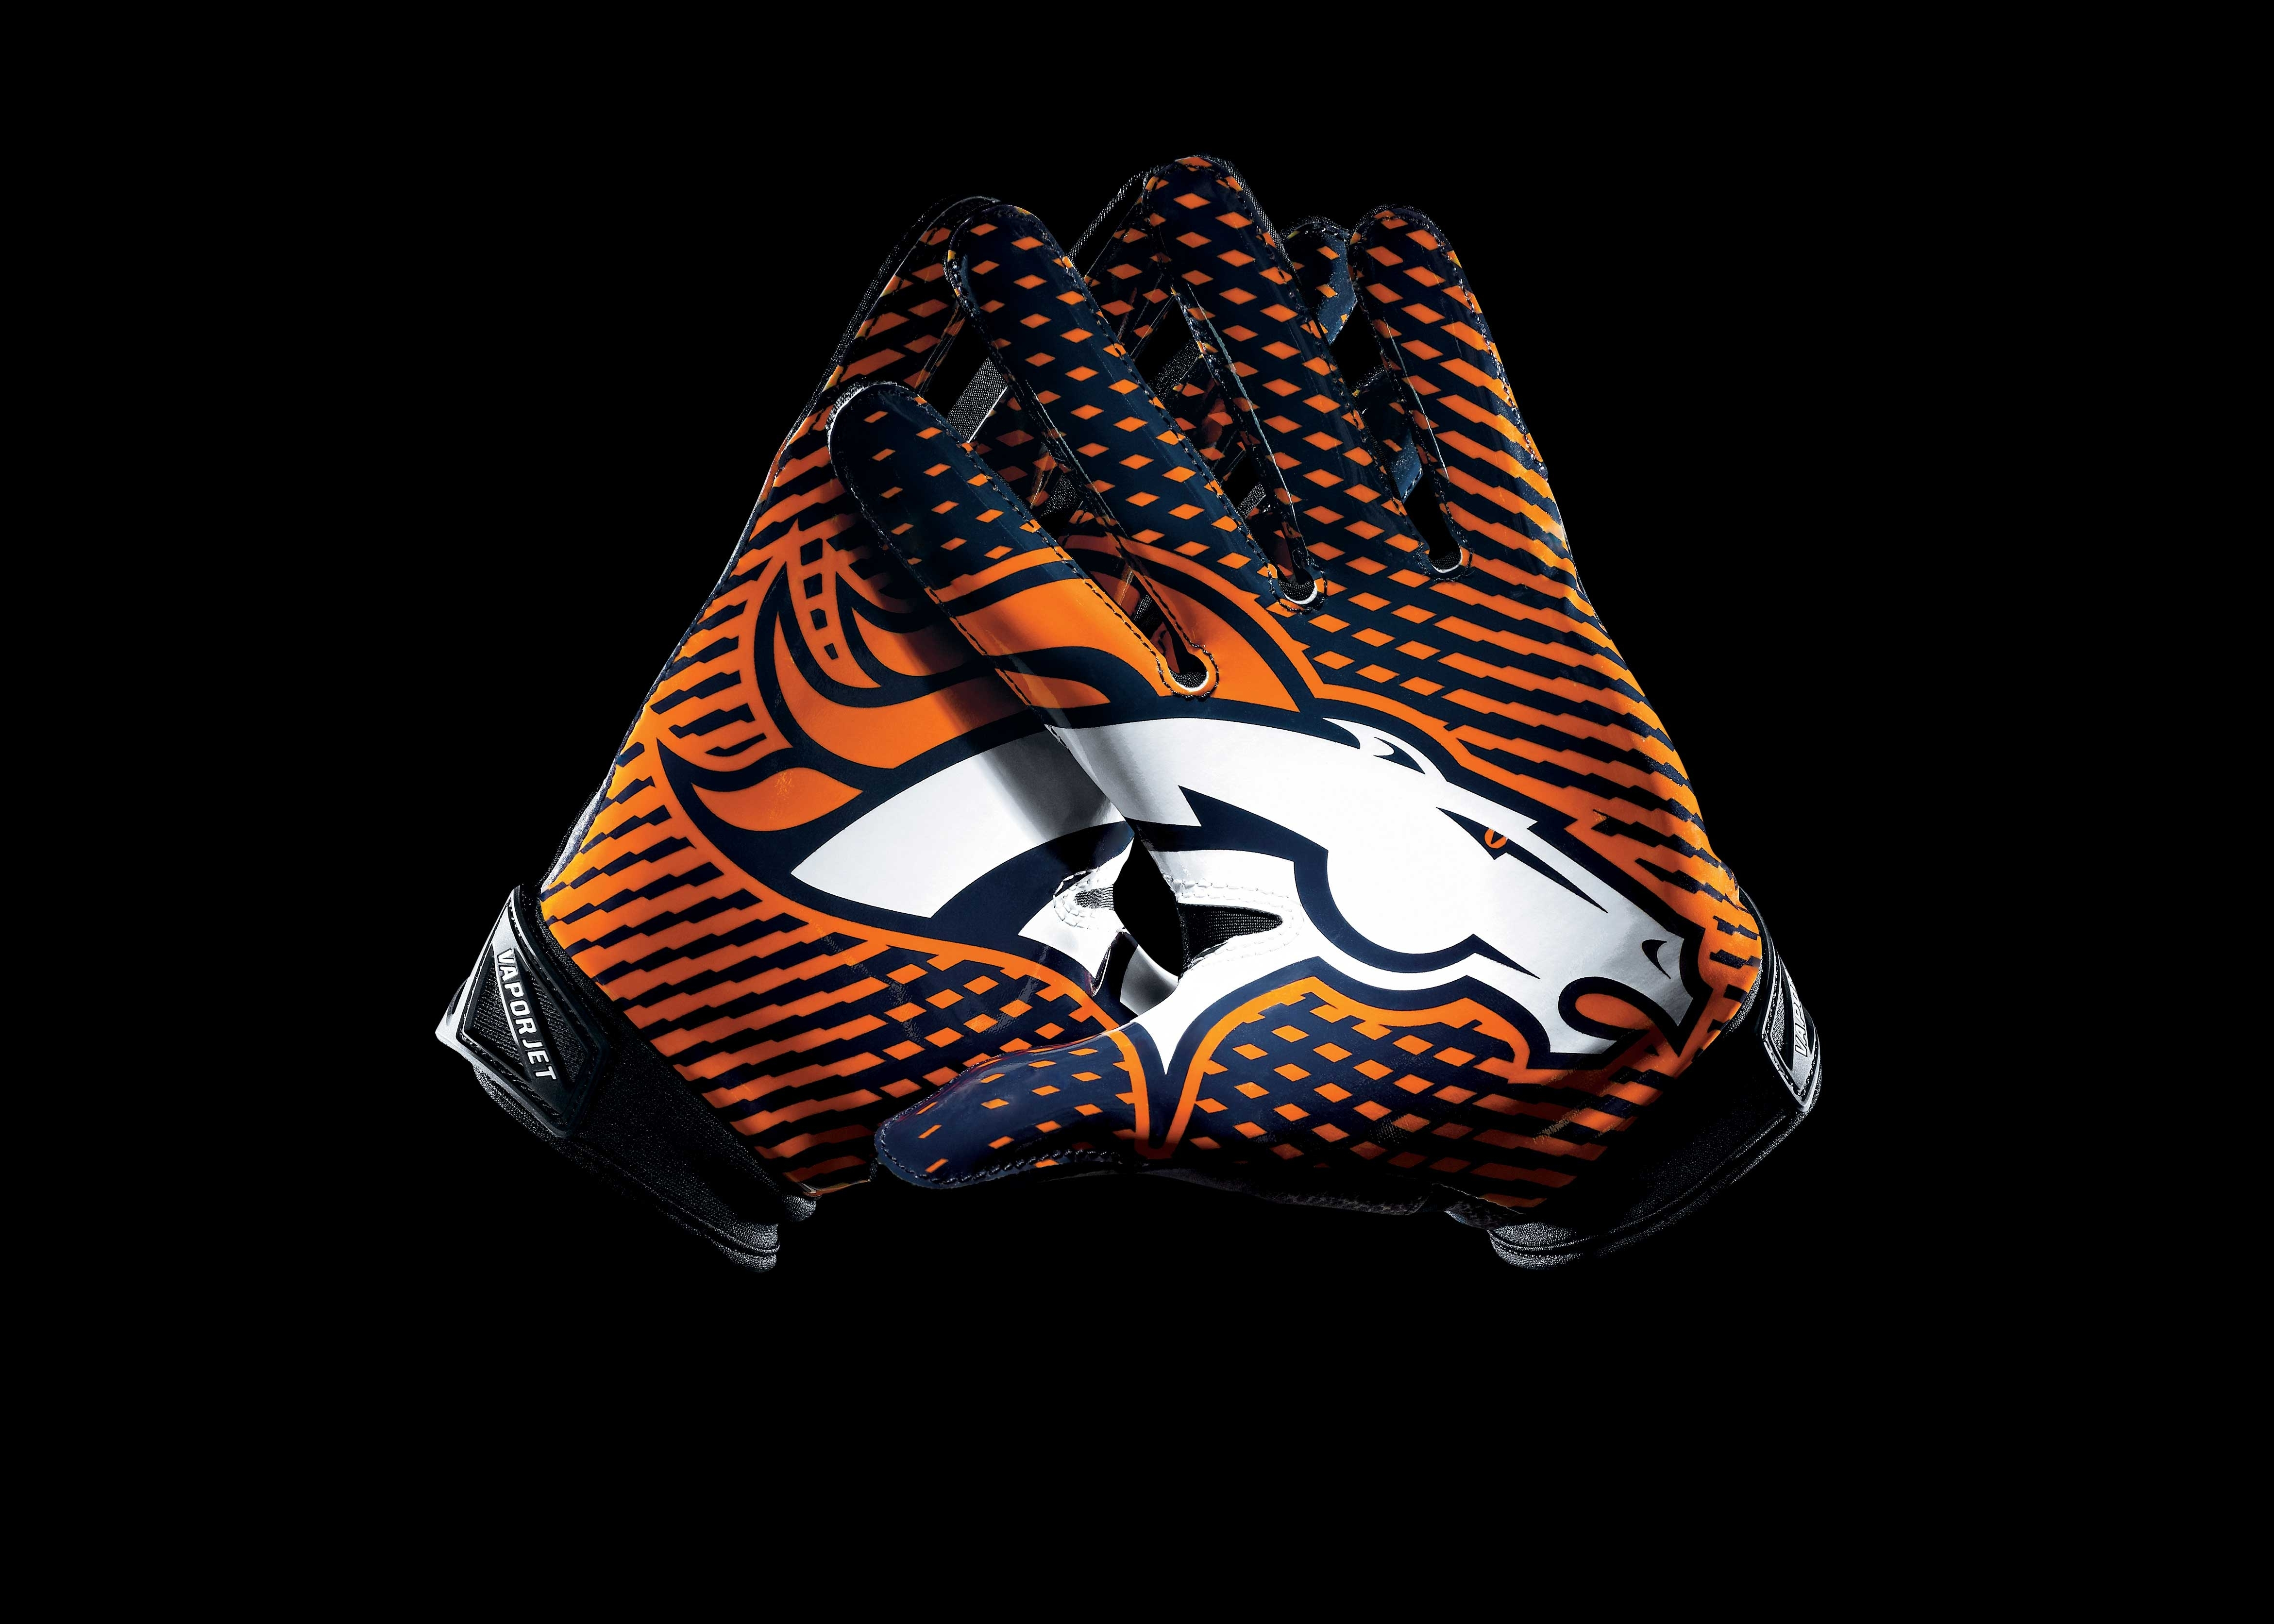 denver broncos gloves wallpaper 49330 4683x3345 px ~ hdwallsource